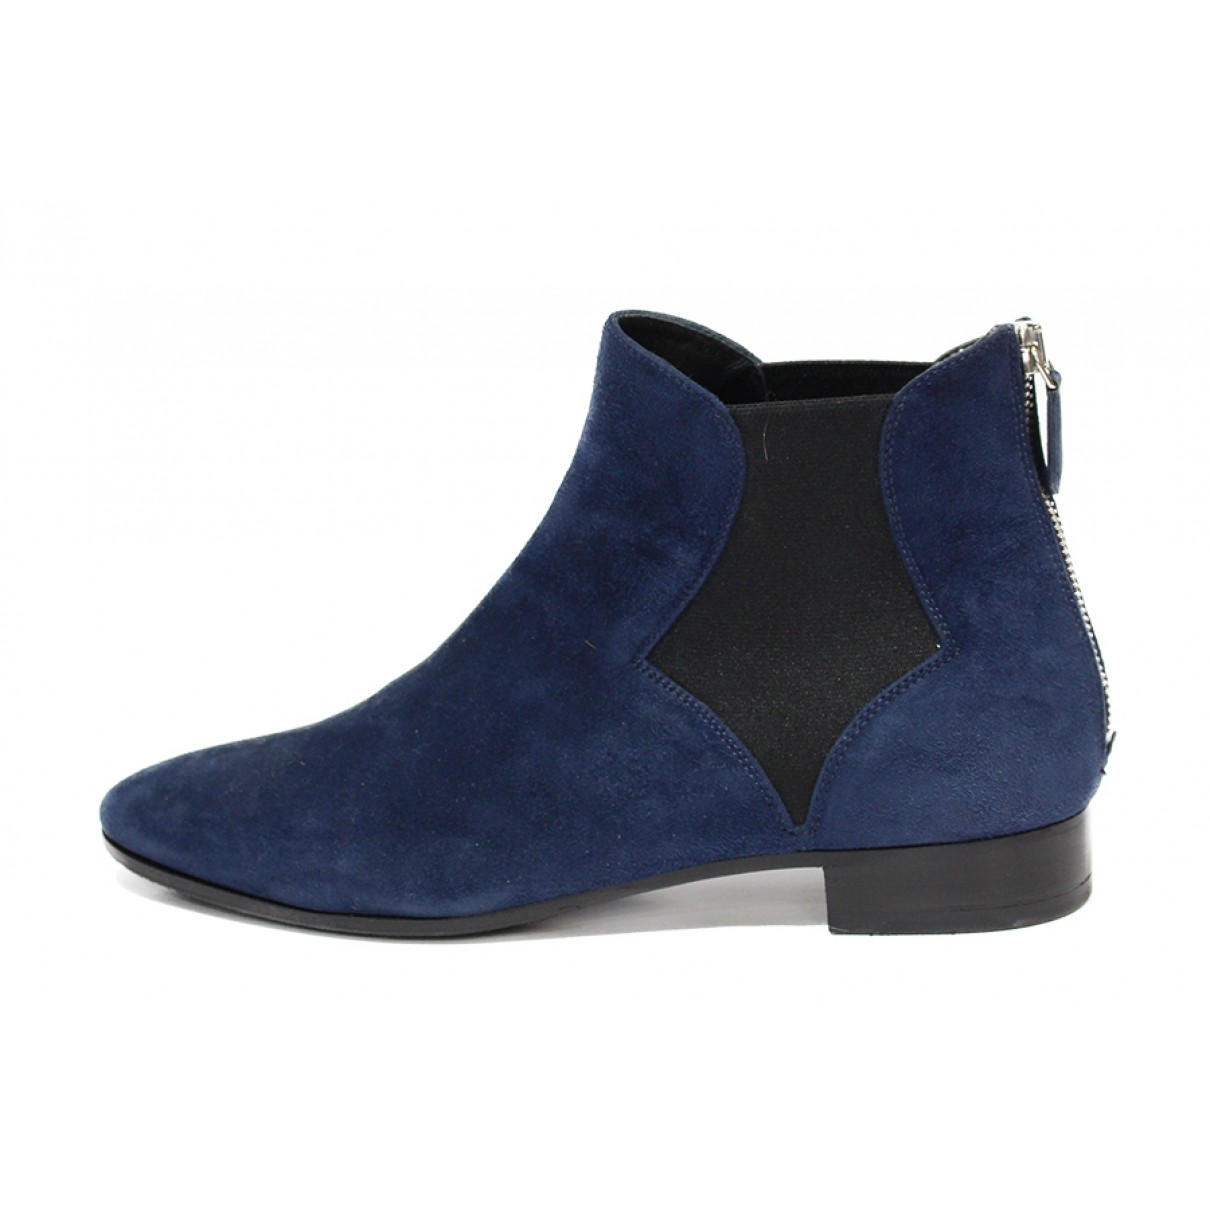 Prada \N Navy Suede Ankle boots for Women 38.5 EU